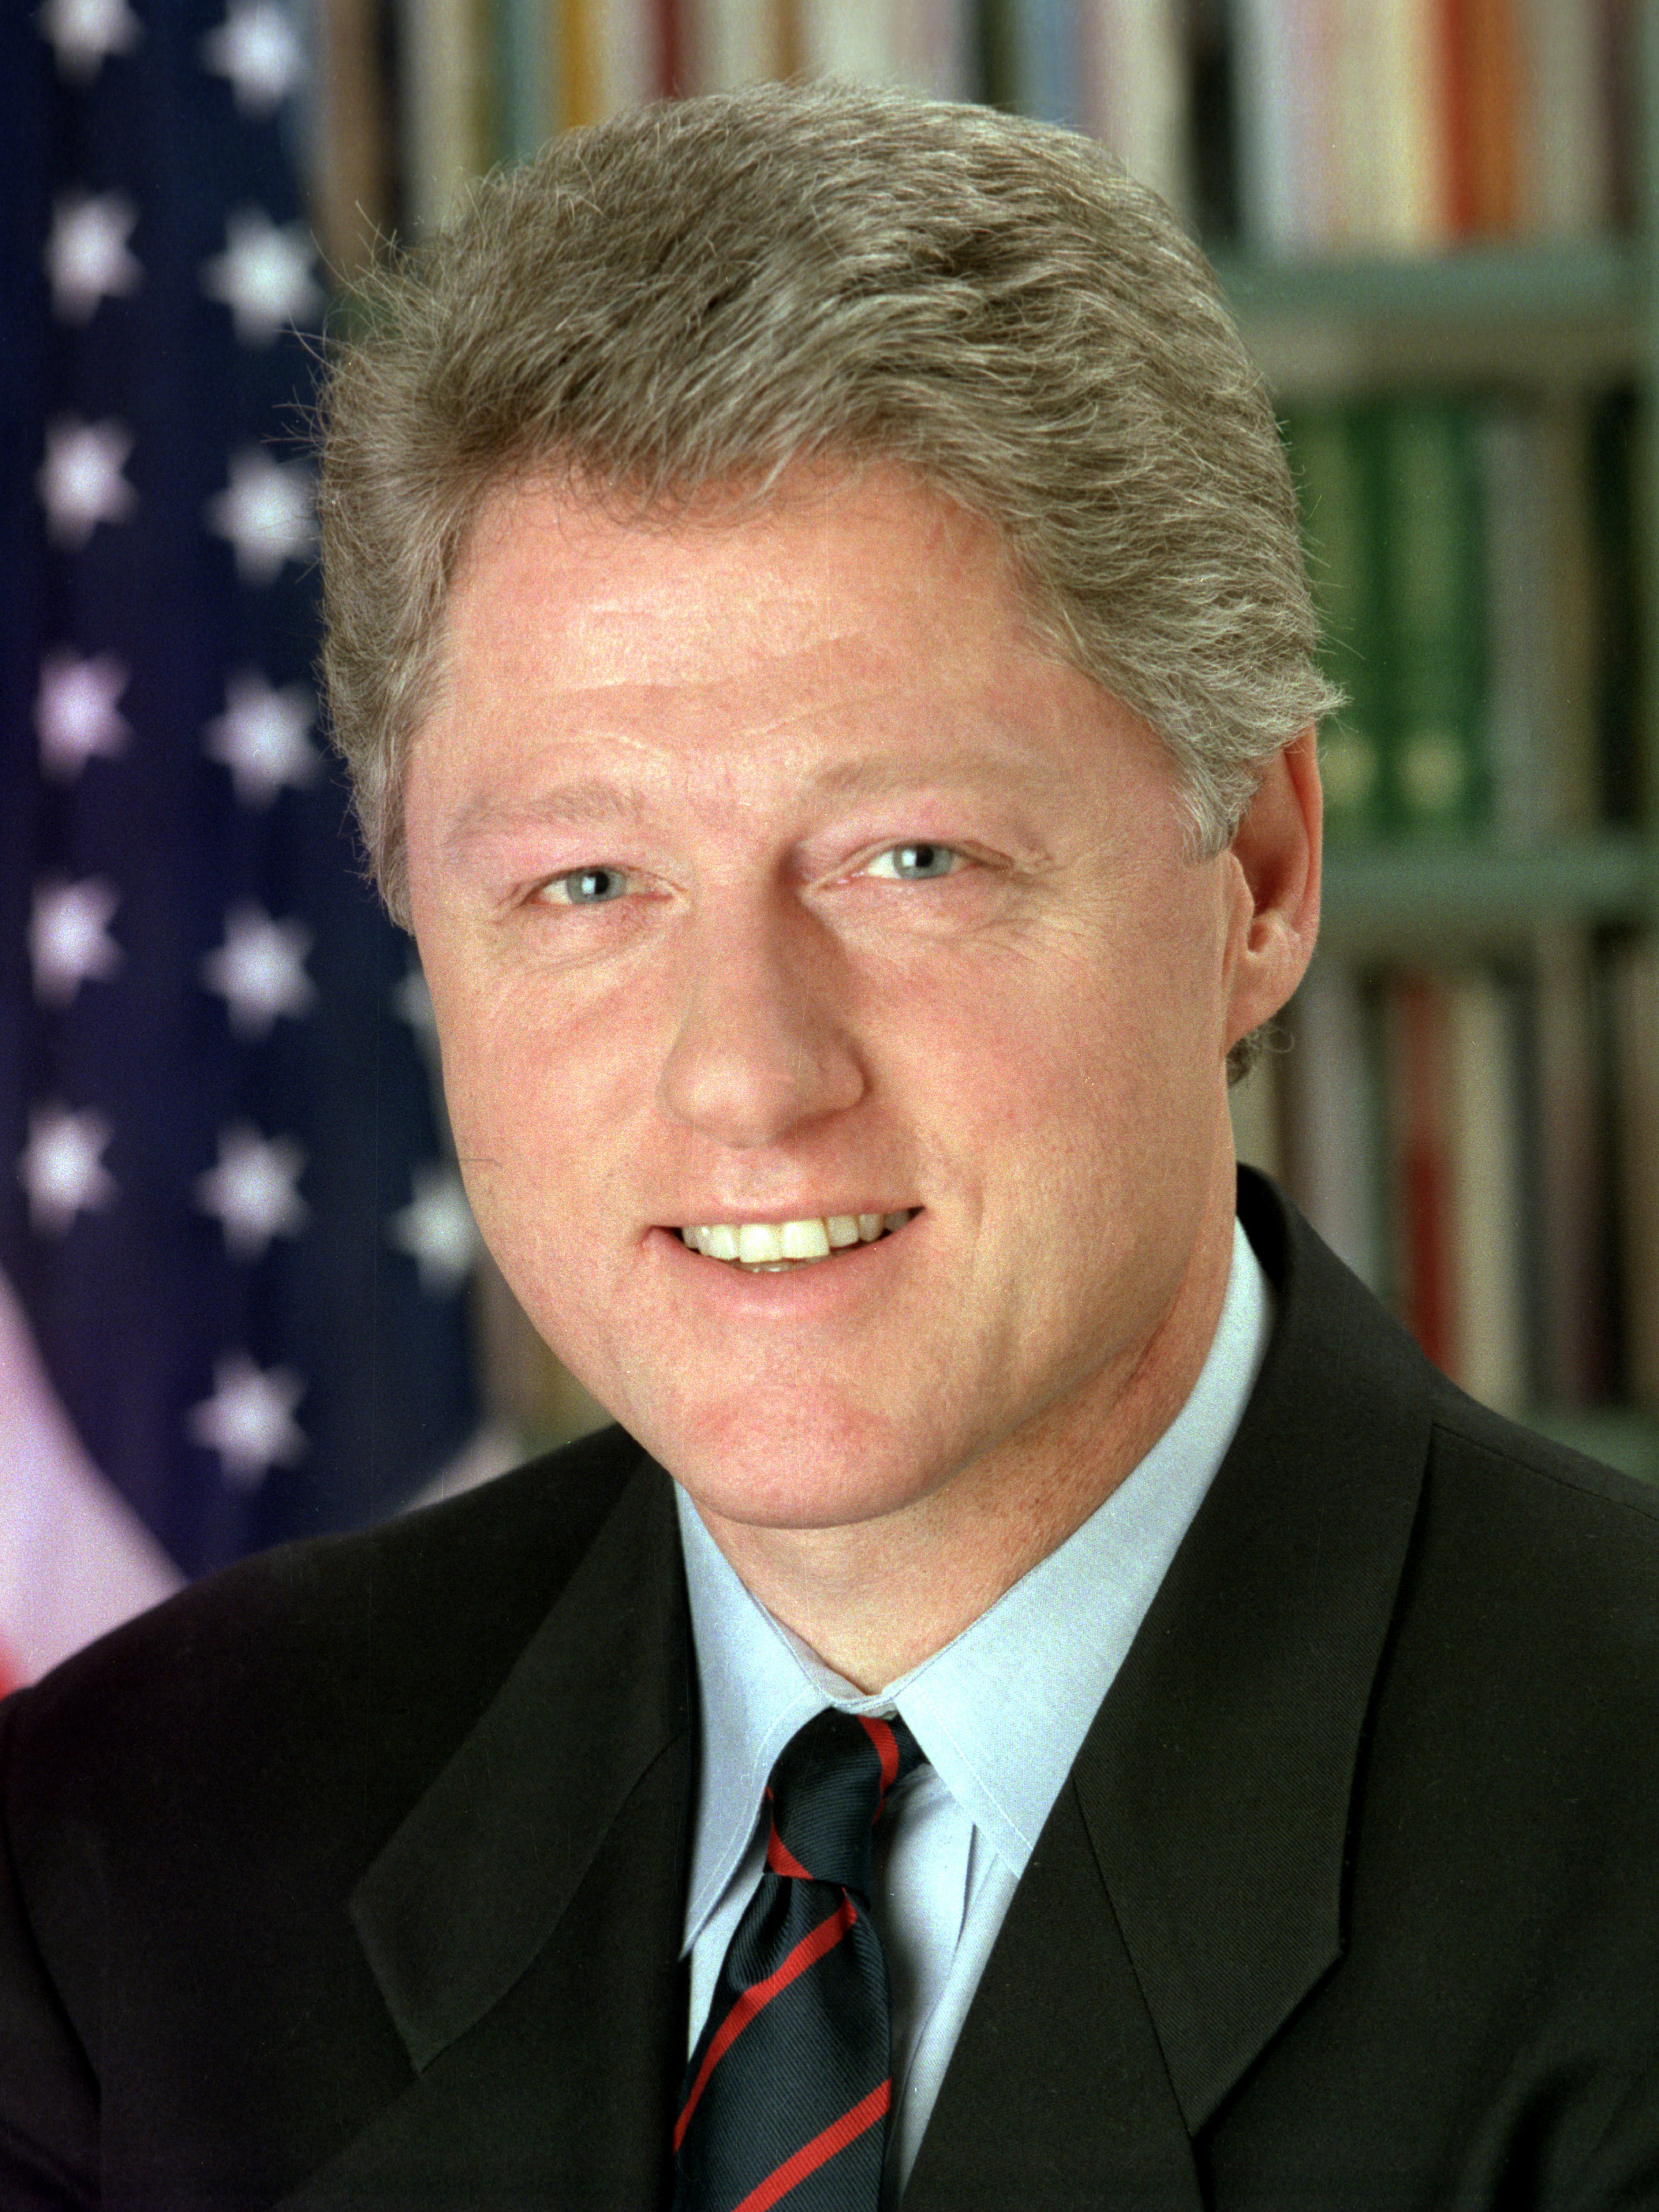 Bill Clinton Net Worth